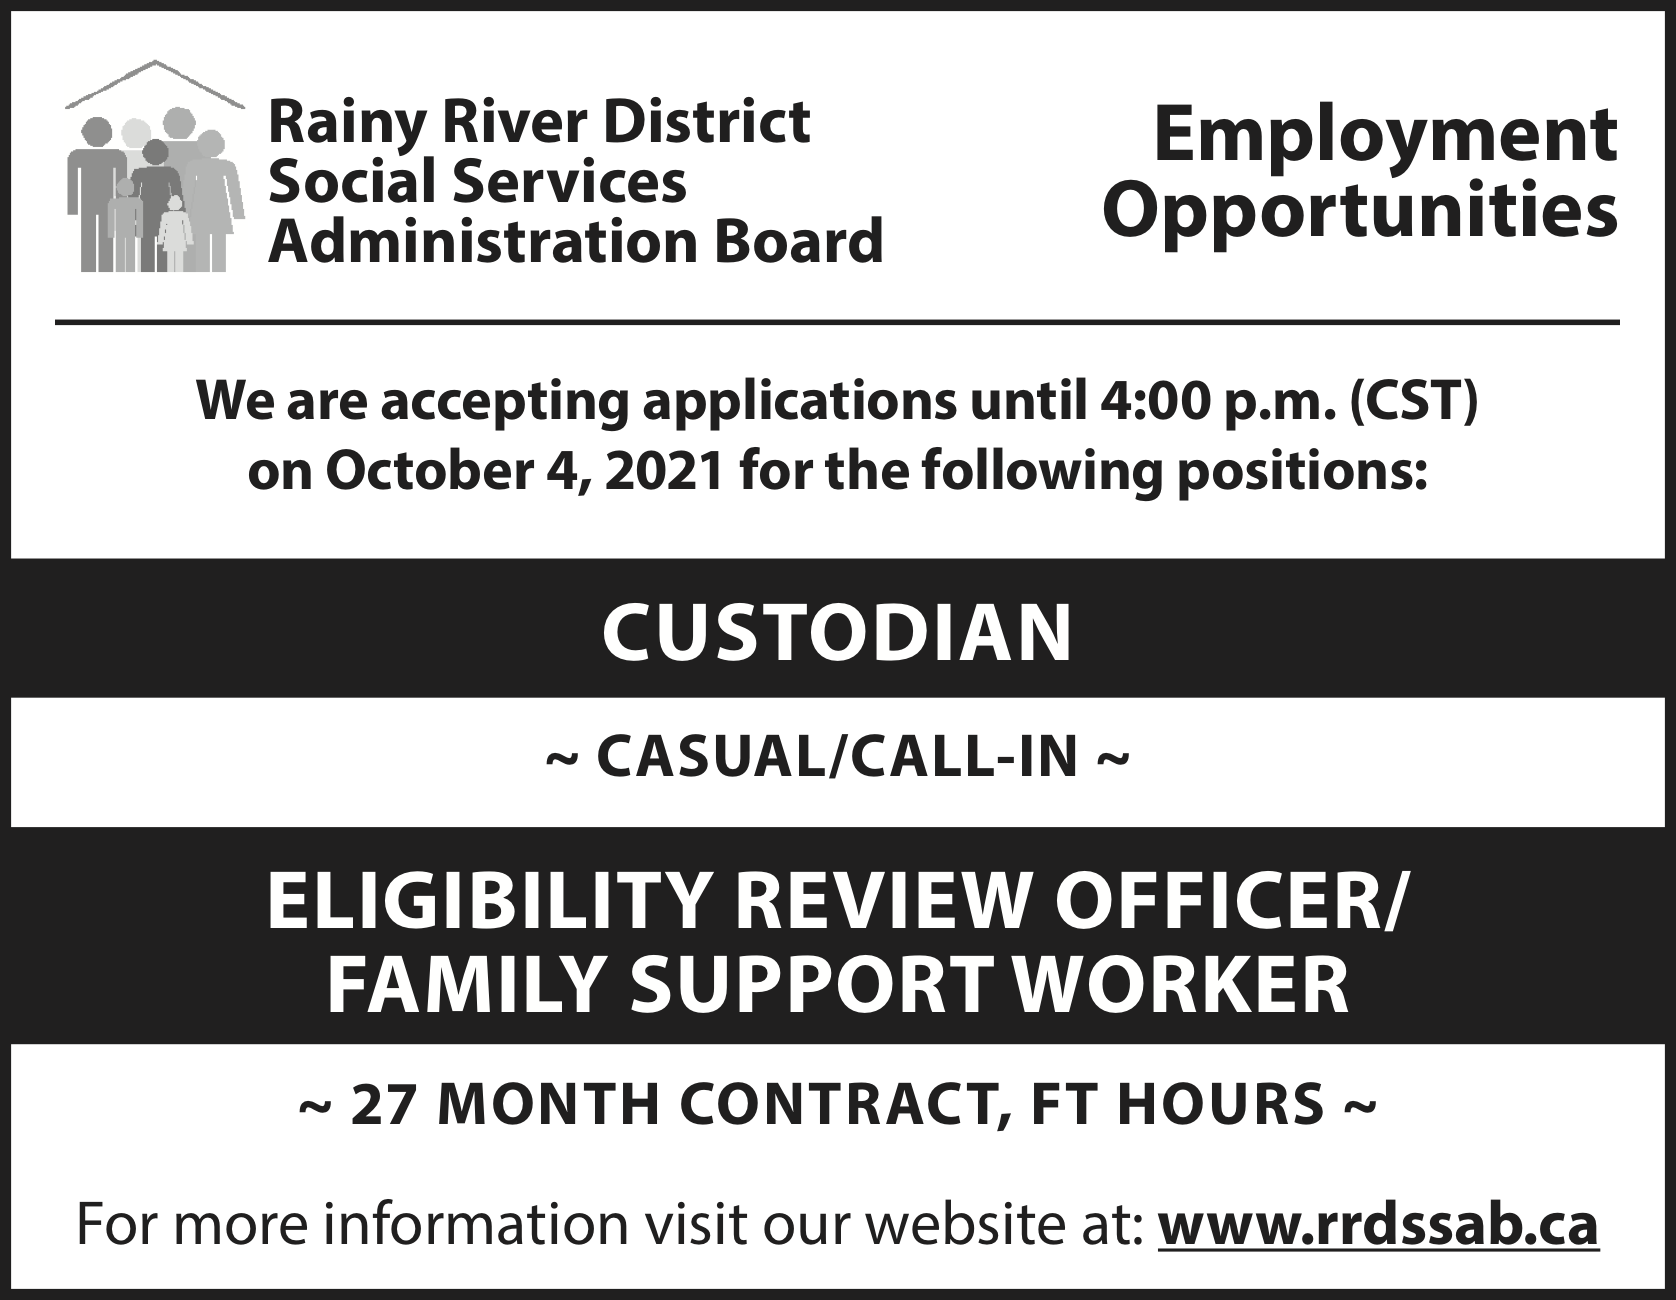 Custodian, Eligibility Review Officer/ Family Support Worker